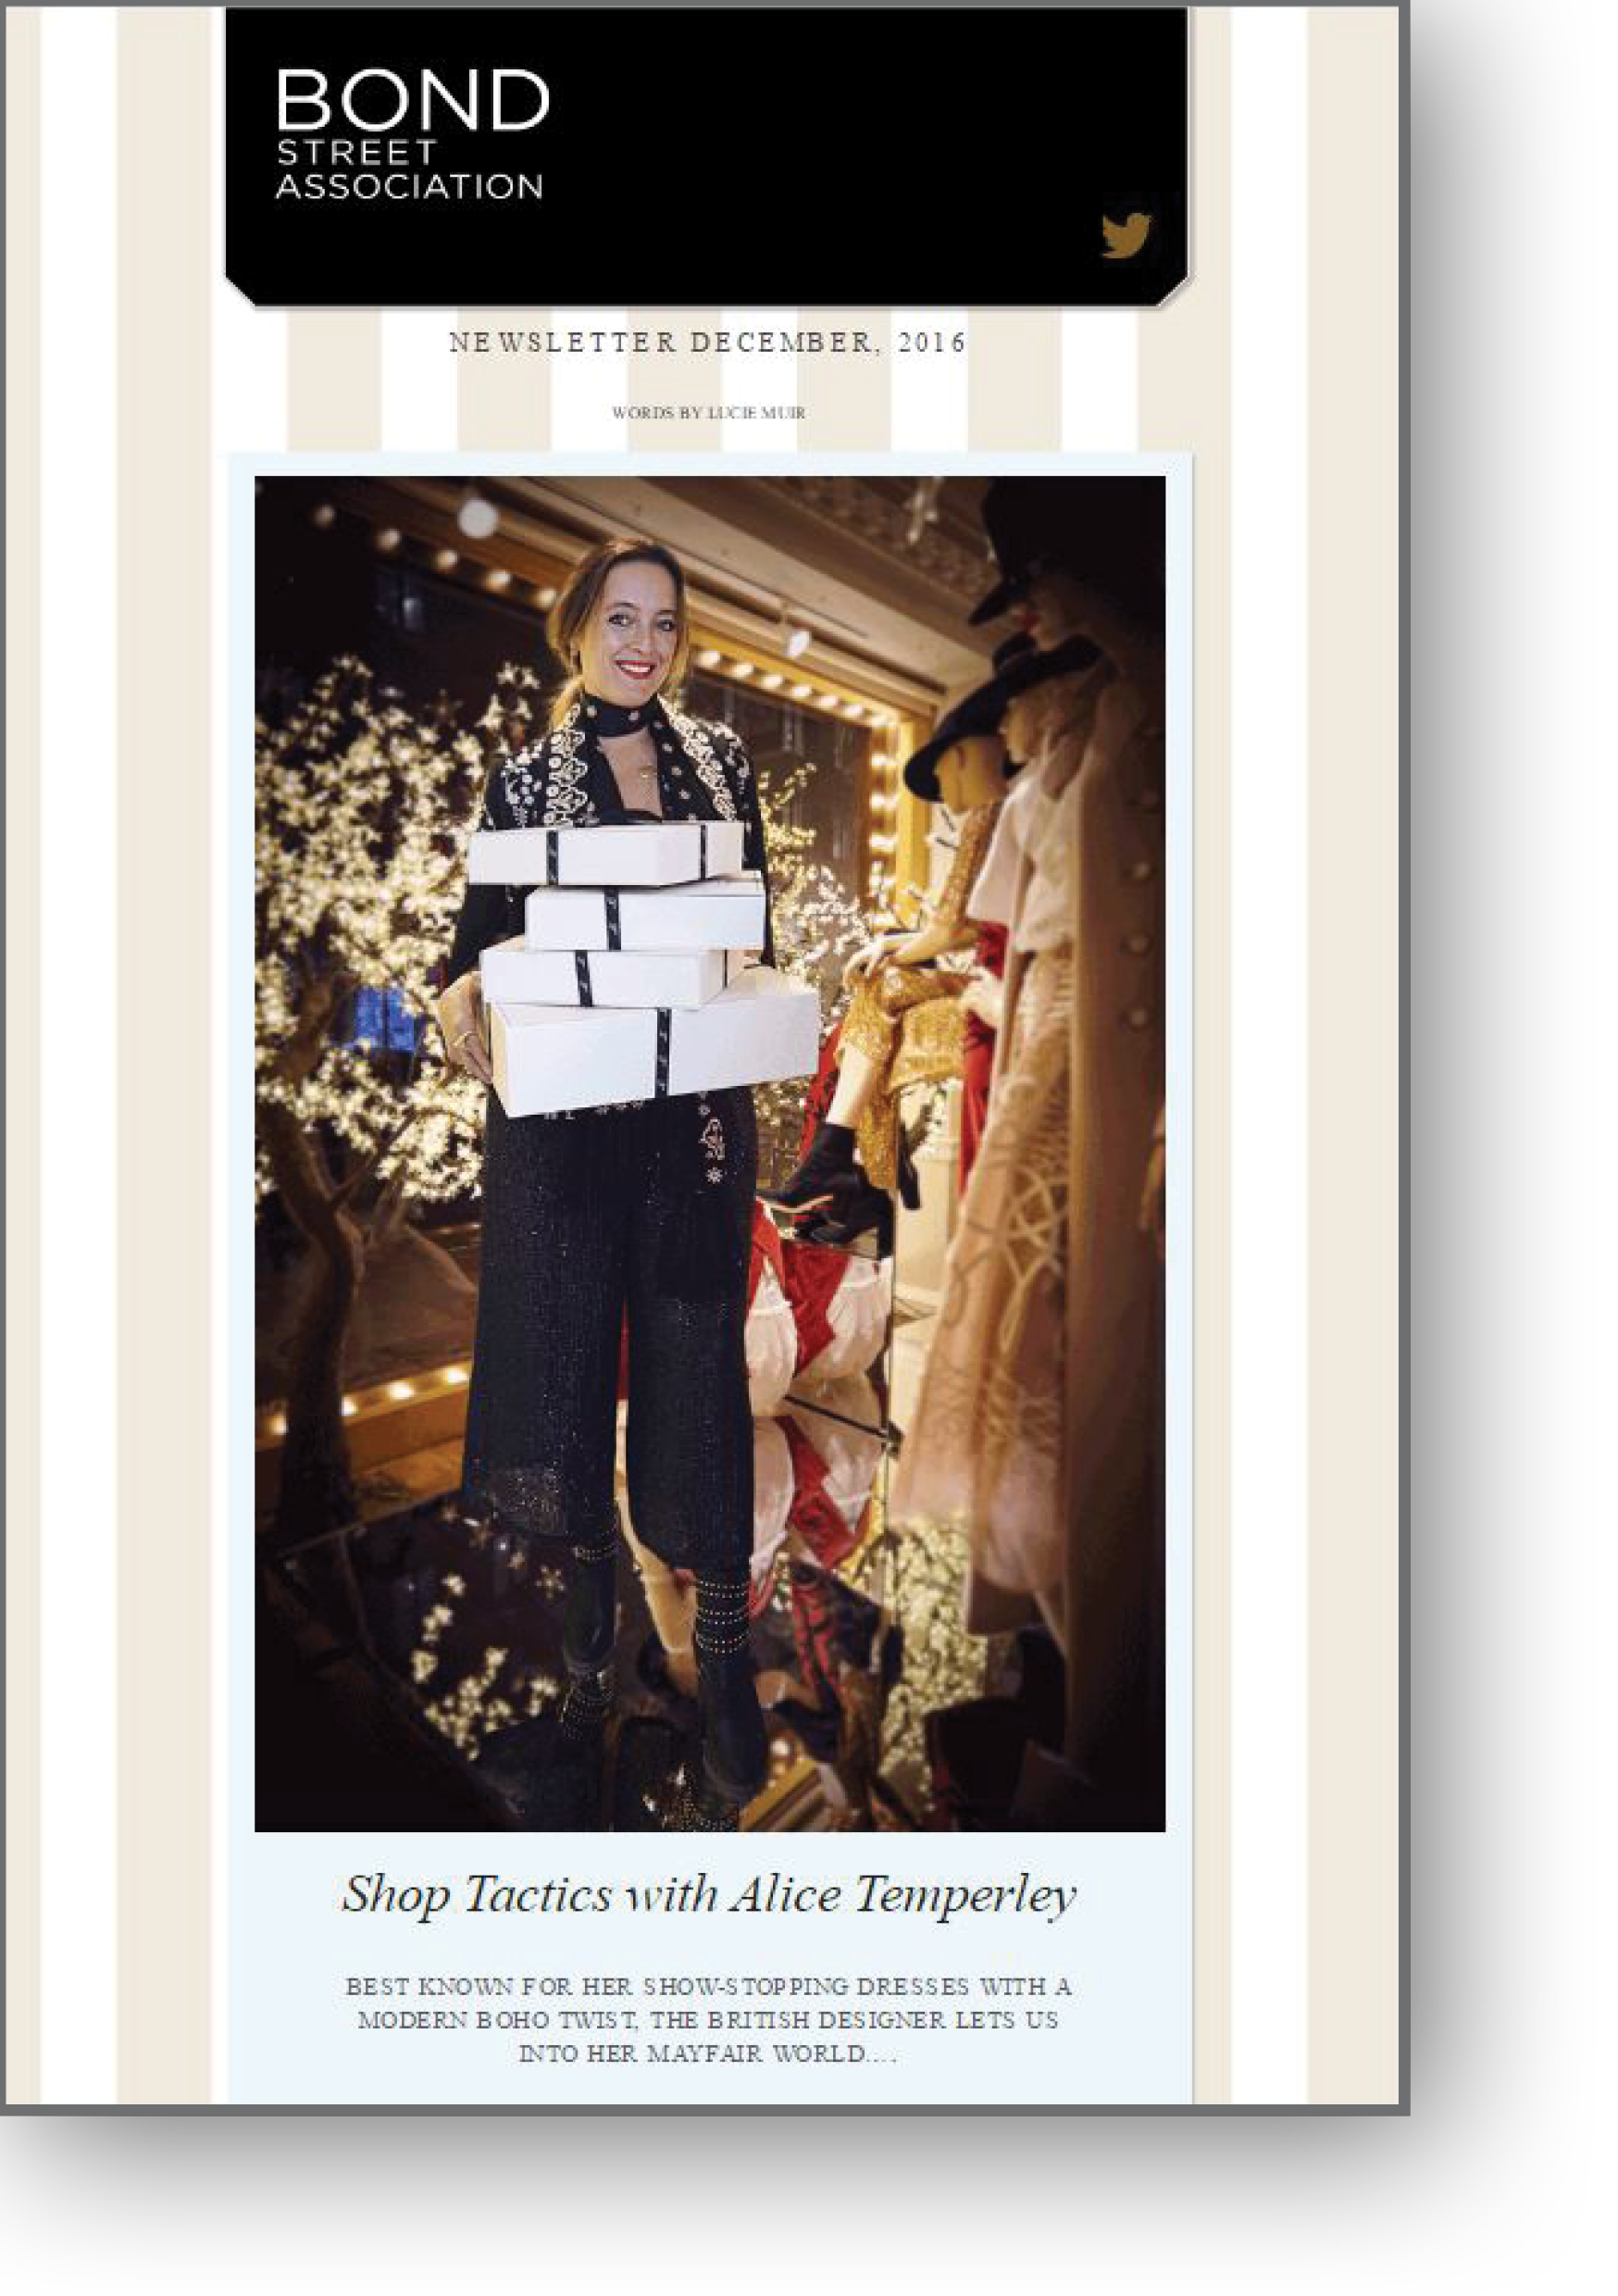 Shop tactics with Alice Temperly for the Bond Street Association Newsletter